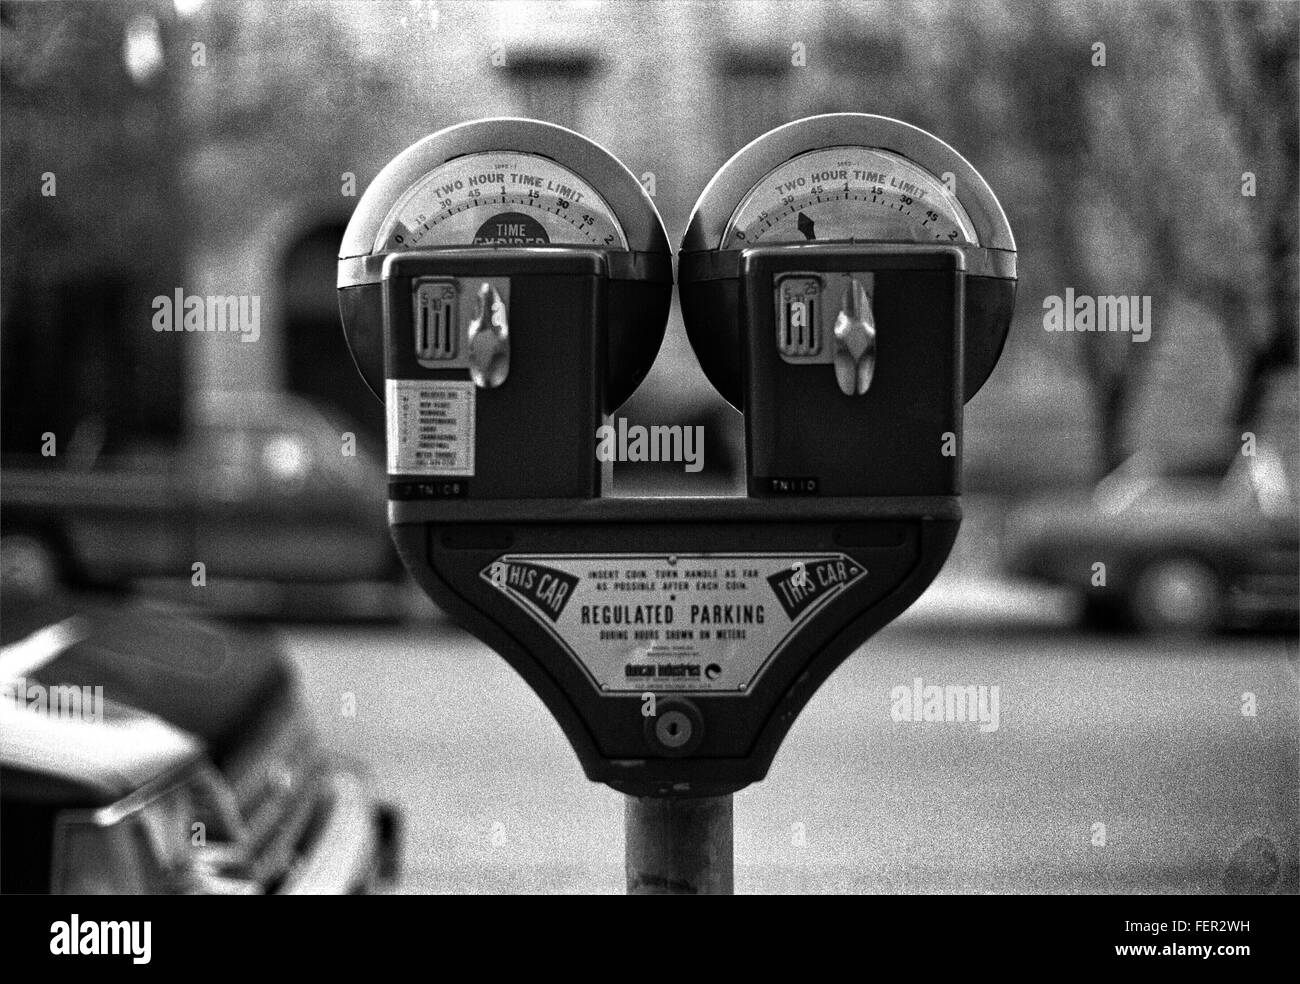 Close-Up Of Parking Meter Against Street - Stock Image